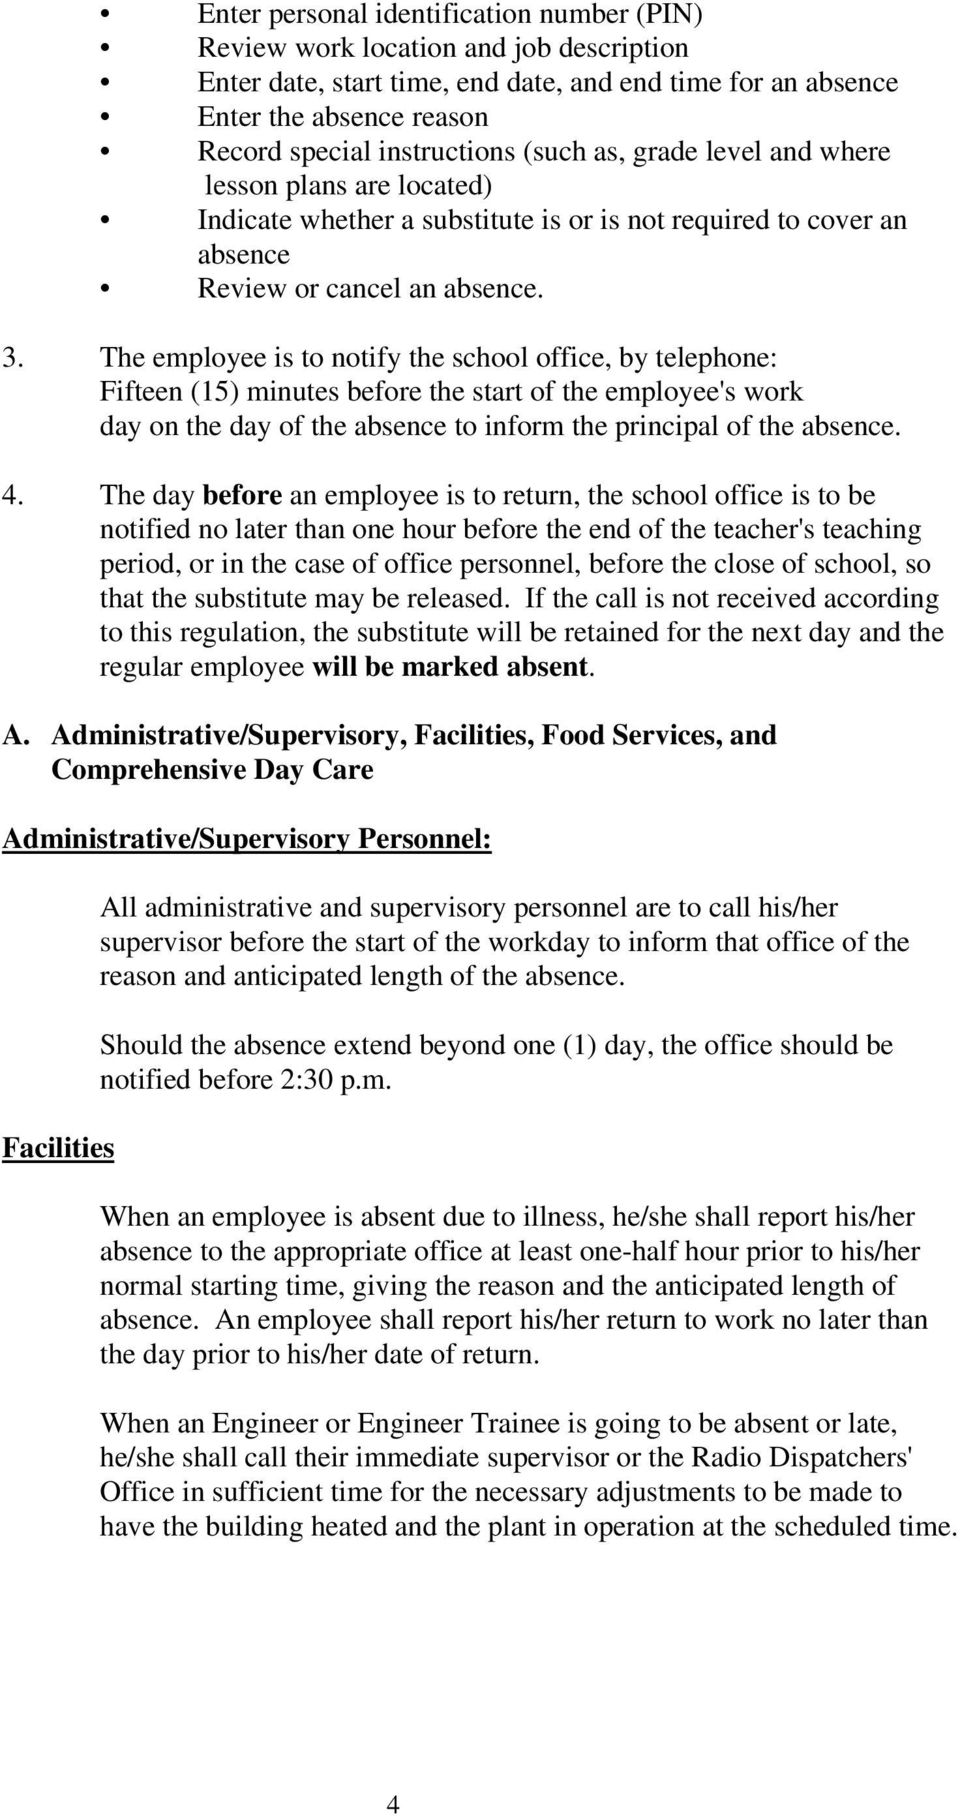 The employee is to notify the school office, by telephone: Fifteen (15) minutes before the start of the employee's work day on the day of the absence to inform the principal of the absence. 4.